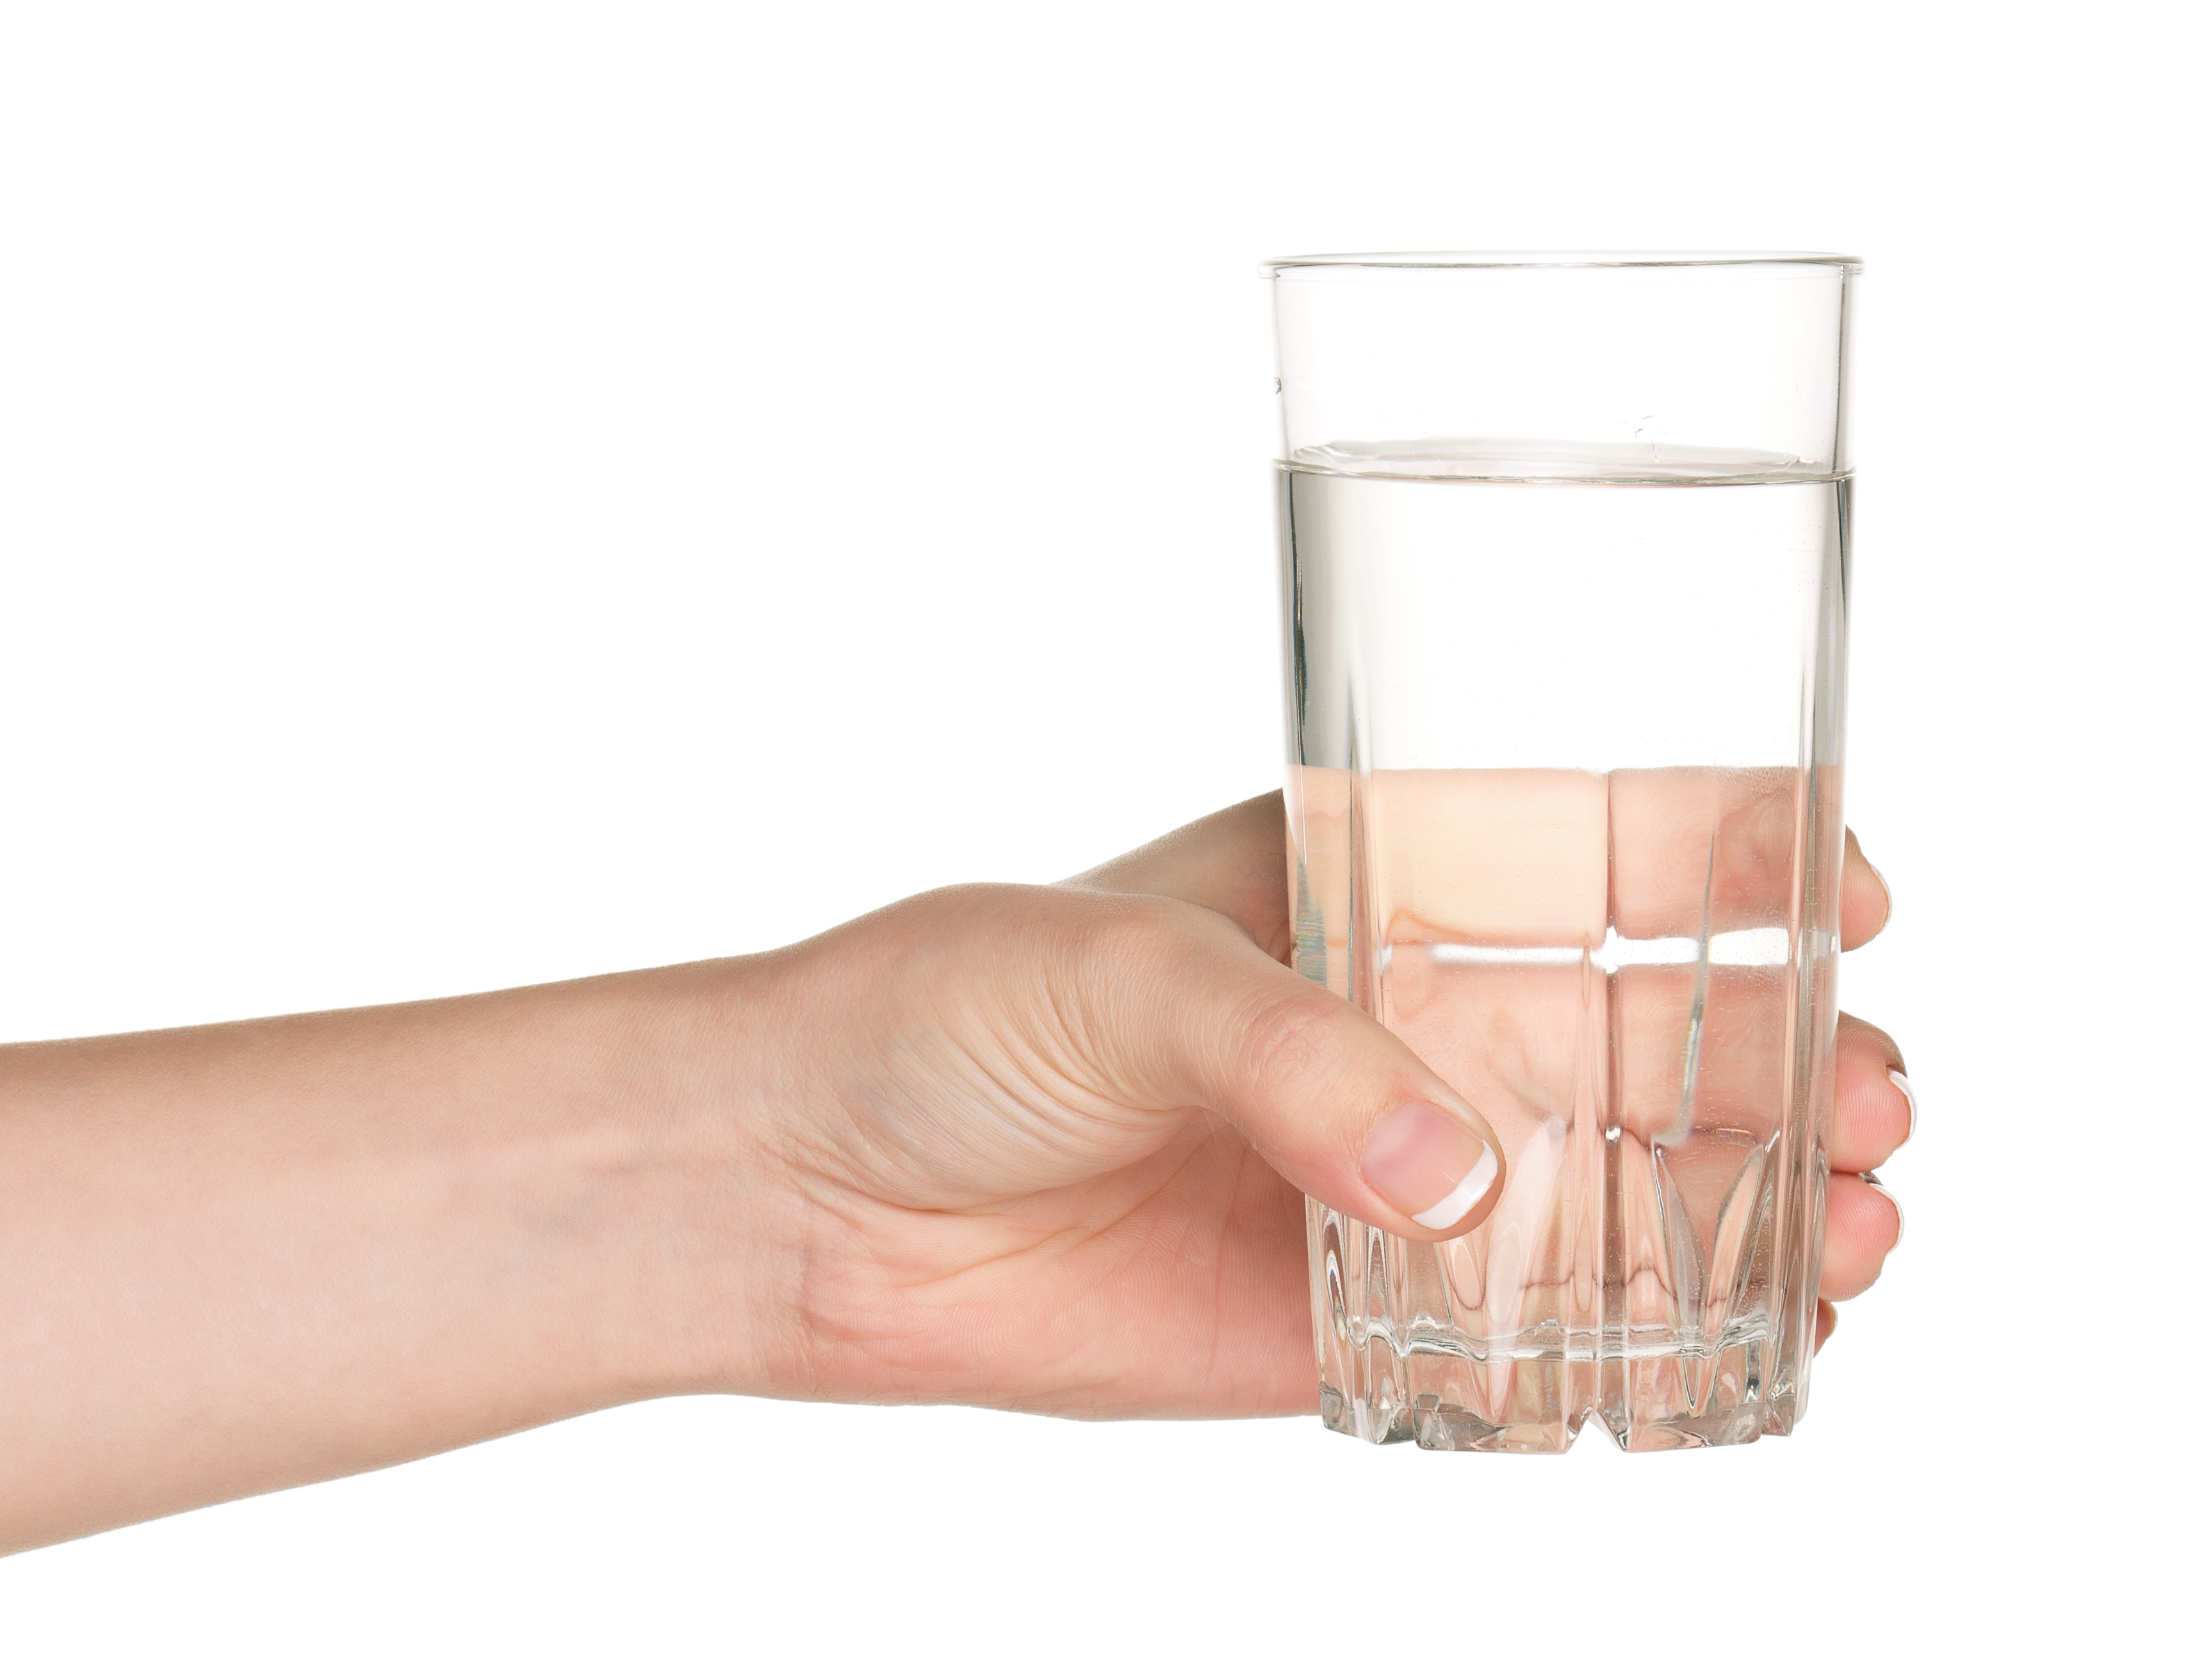 woman's hand holding glass of water